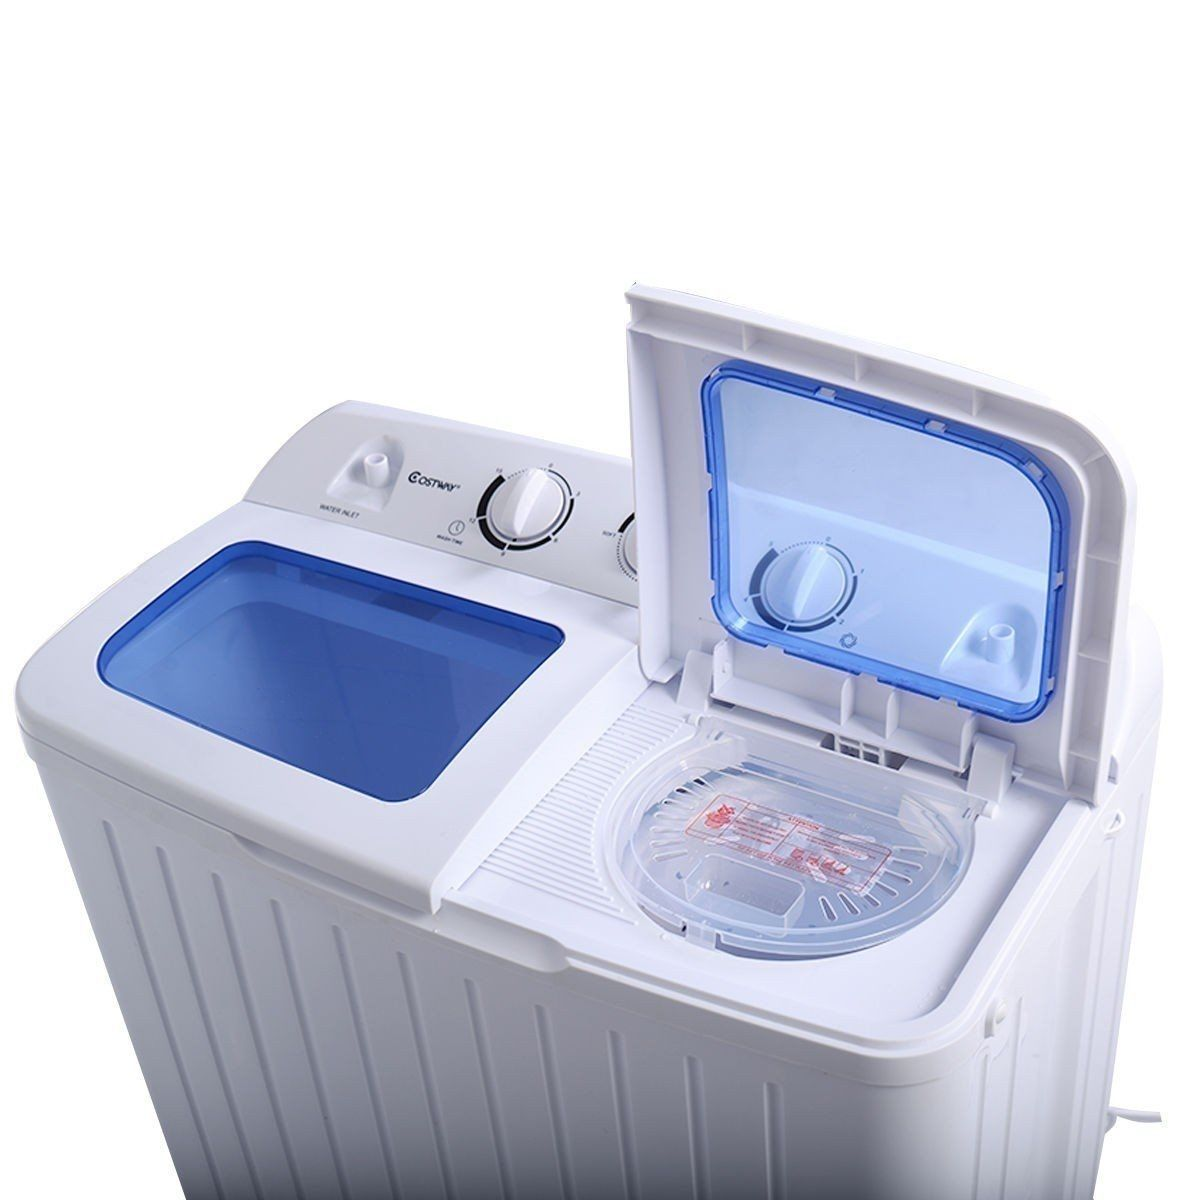 portable washing machine washer and clothes dryer top loading electric compact washer dryer sets. Black Bedroom Furniture Sets. Home Design Ideas